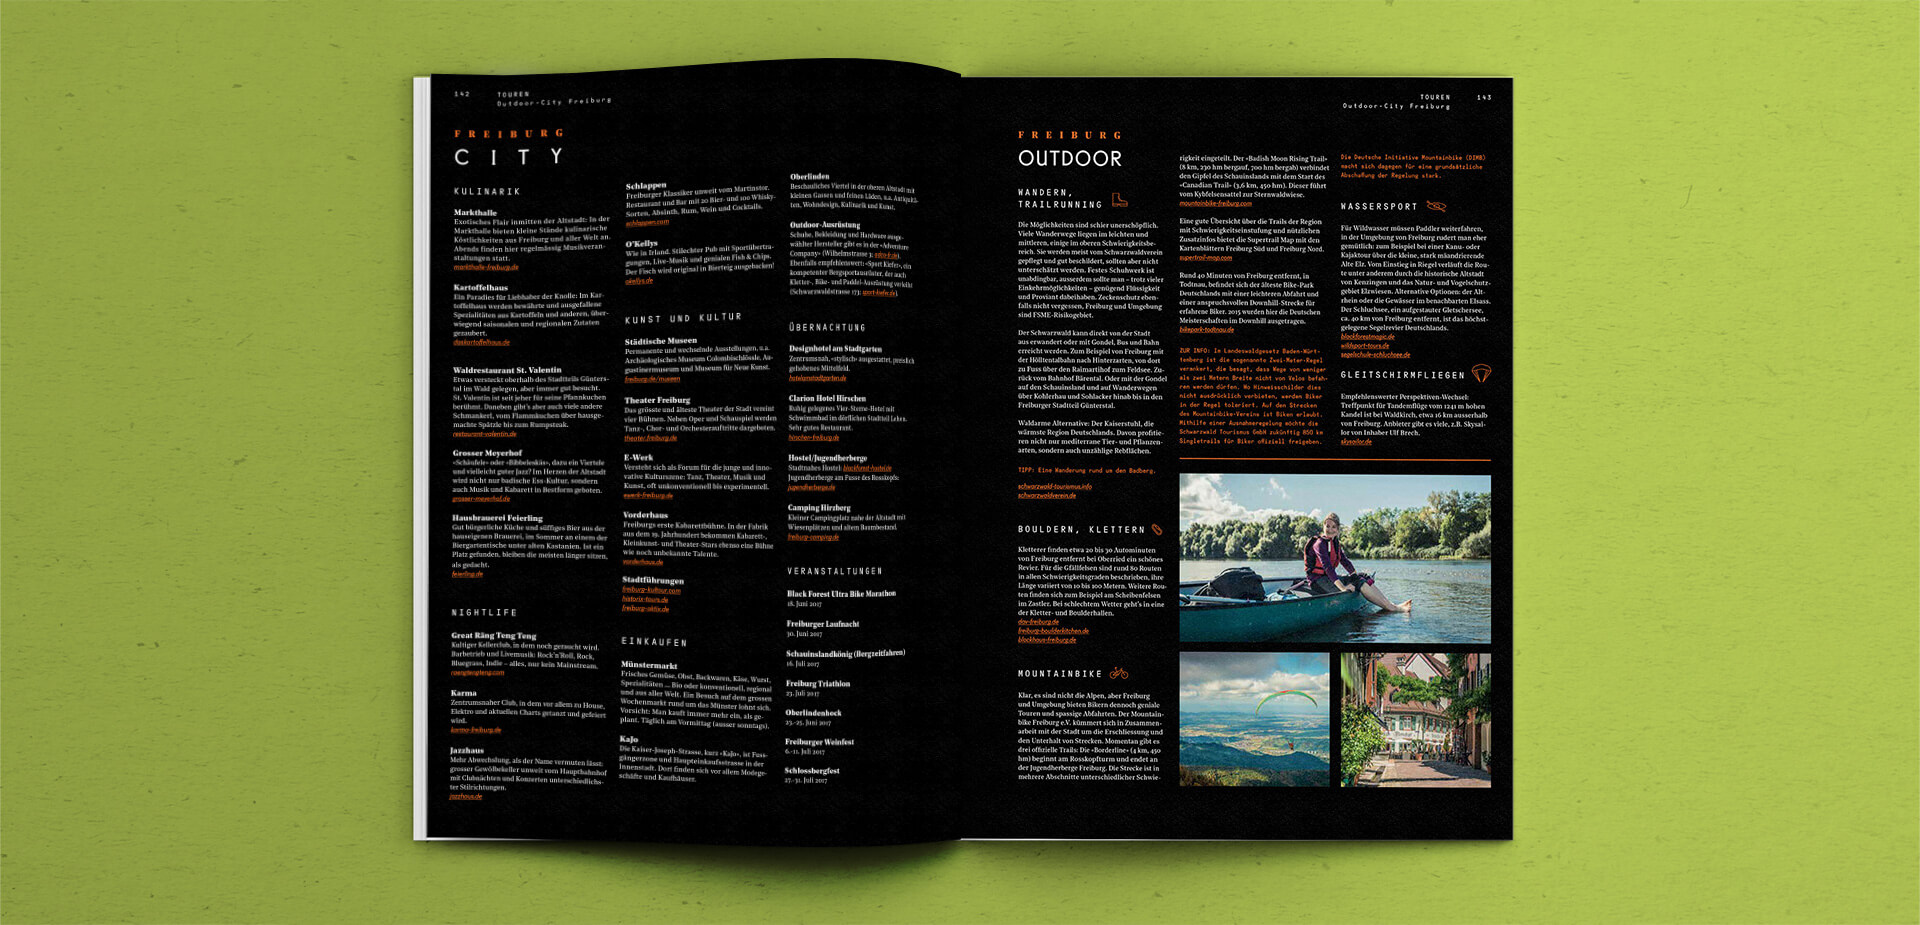 Spread of a story in the Outdoor Guide Magazine